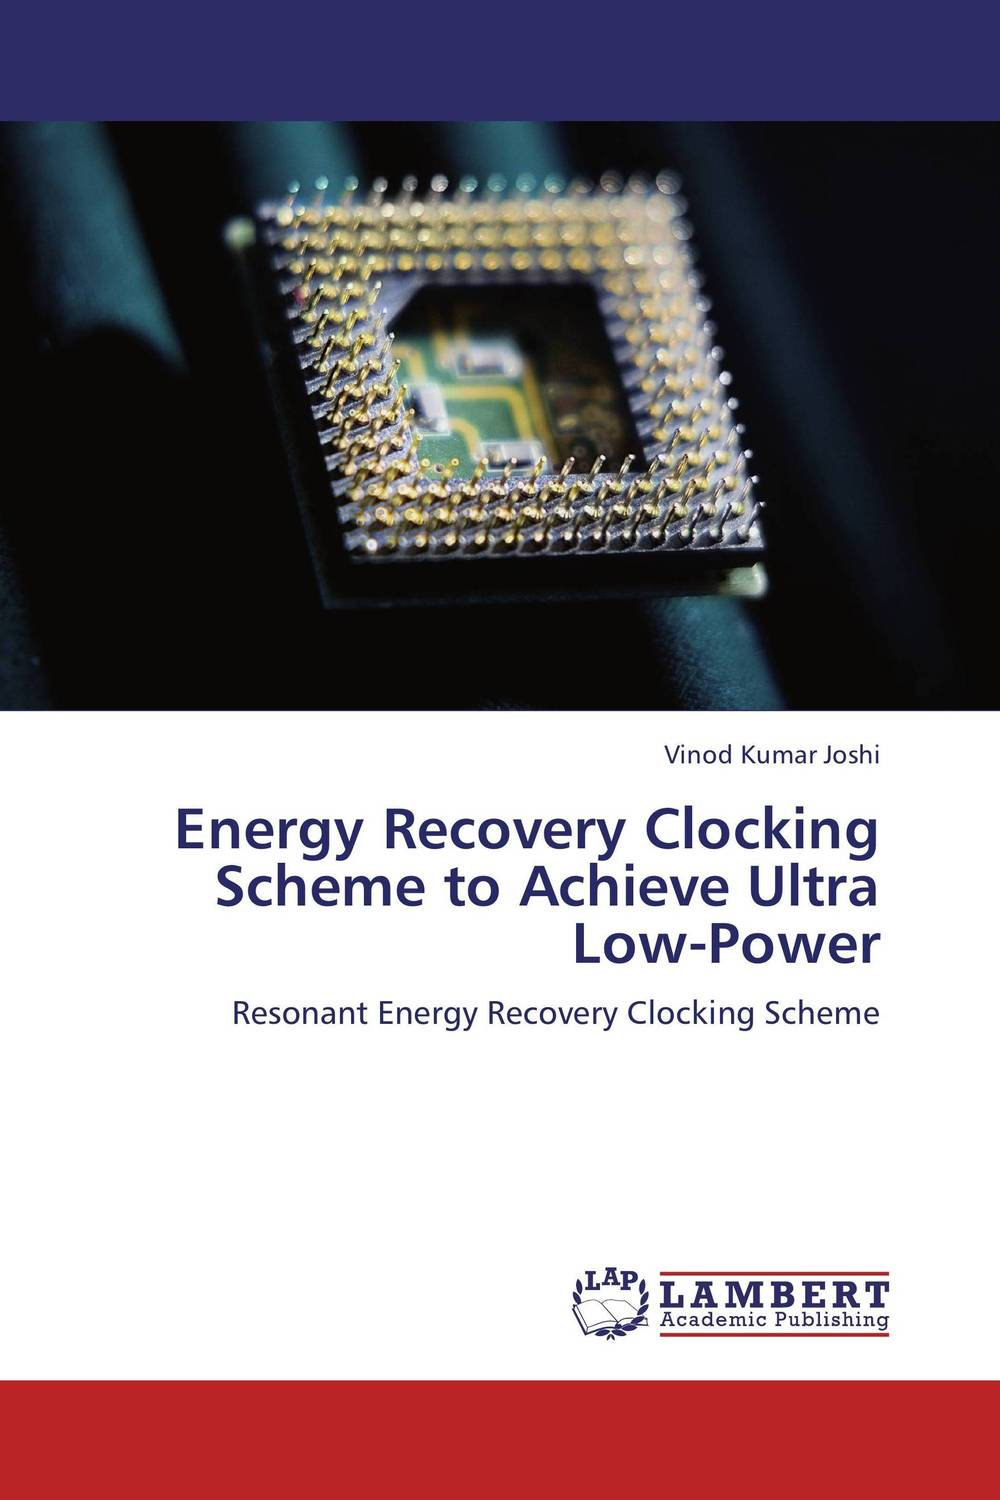 Energy Recovery Clocking Scheme to Achieve Ultra Low-Power конструктор pilsan brick 43 детали 03 251